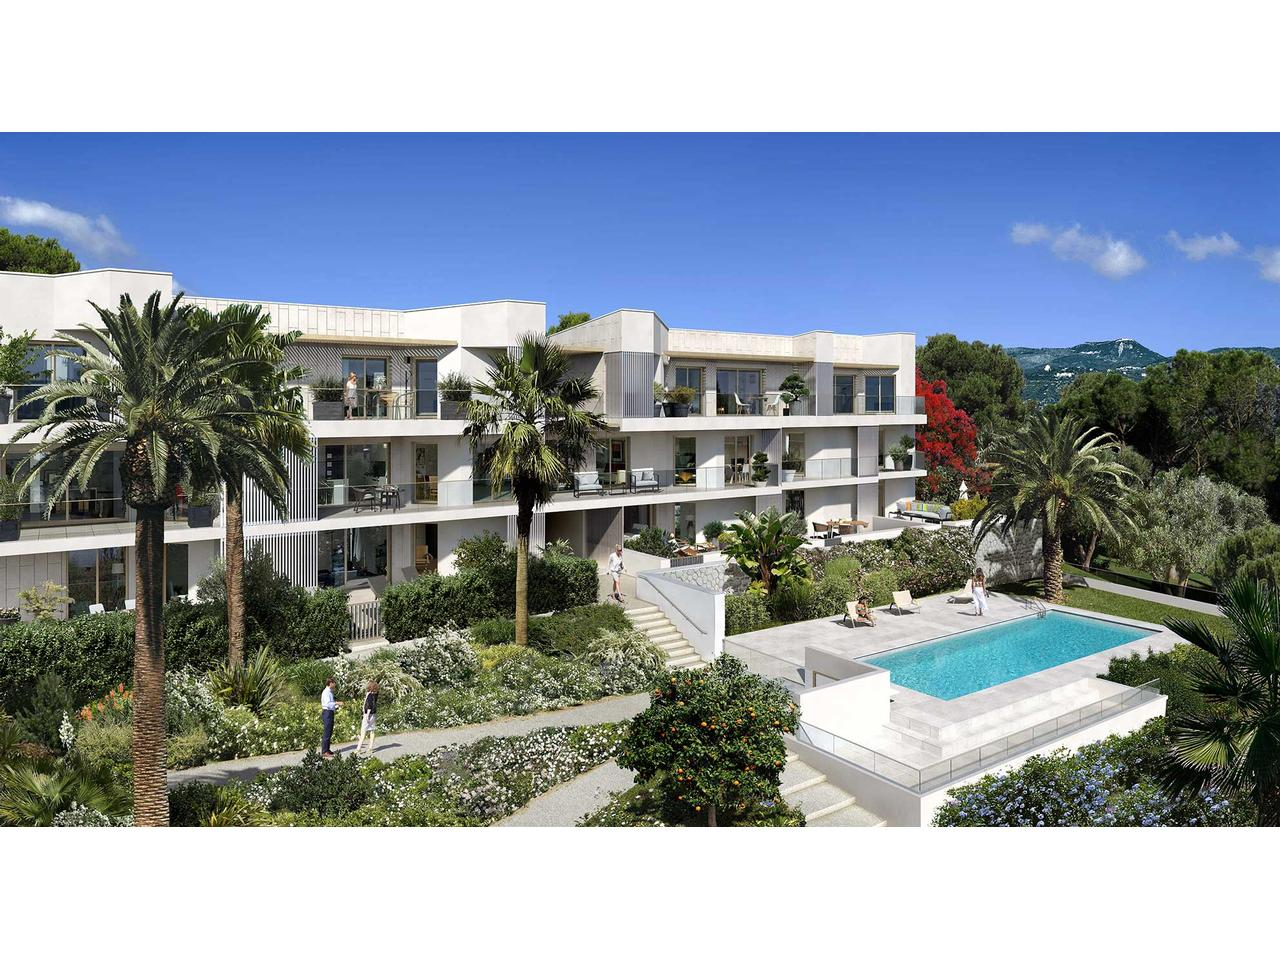 Nice Ouest Programme Neuf Luxe 2 pièces VUE MER a vendre